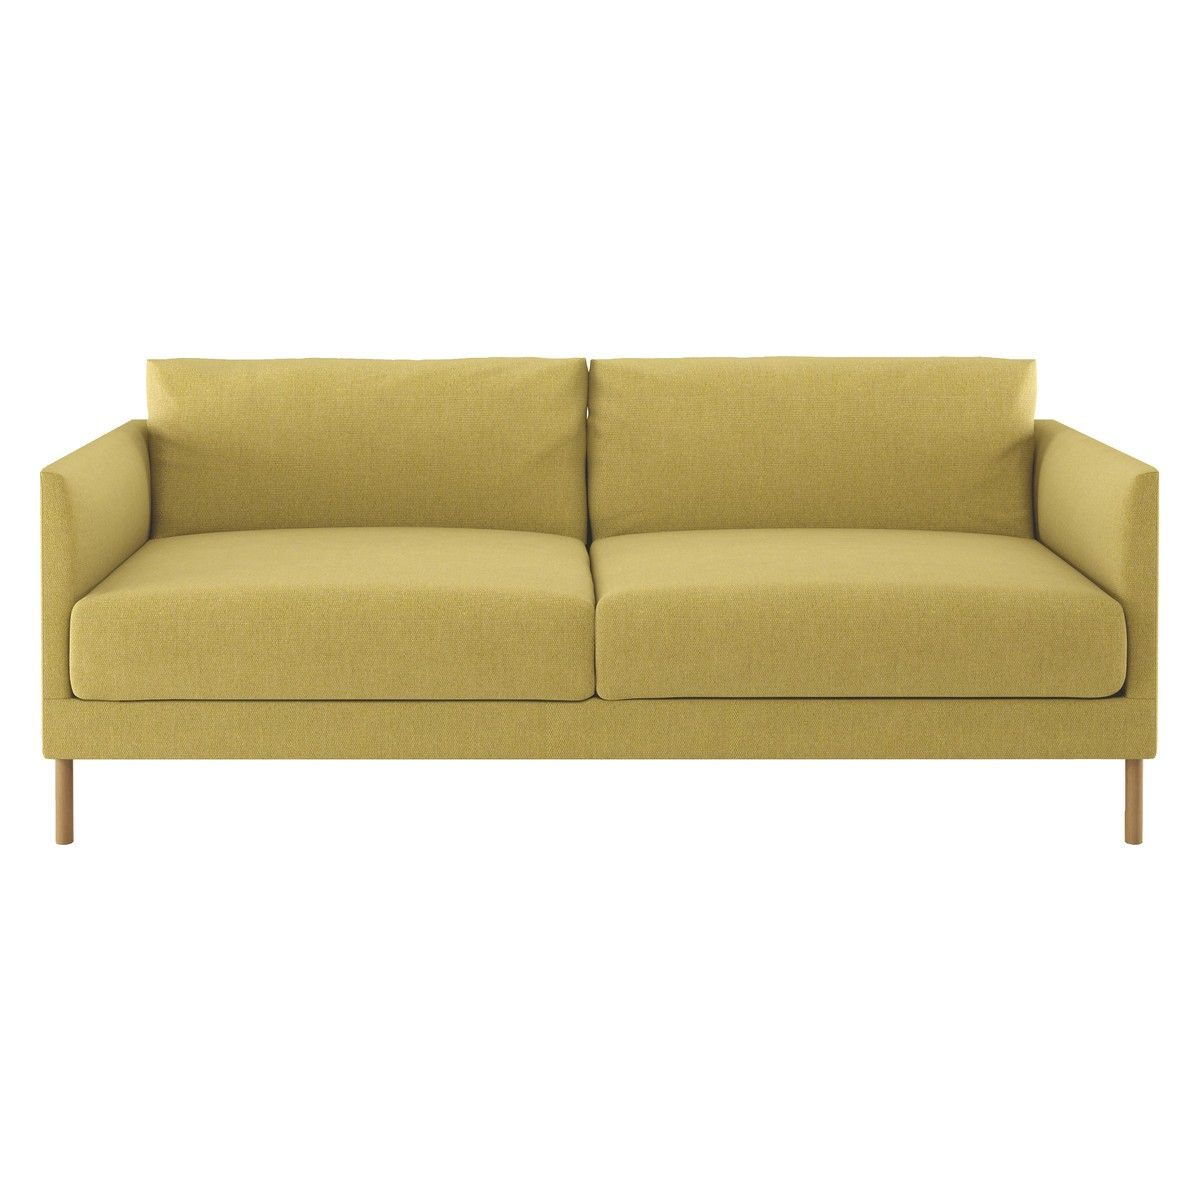 Beau HYDE Yellow Fabric 3 Seater Sofa, Wooden Legs